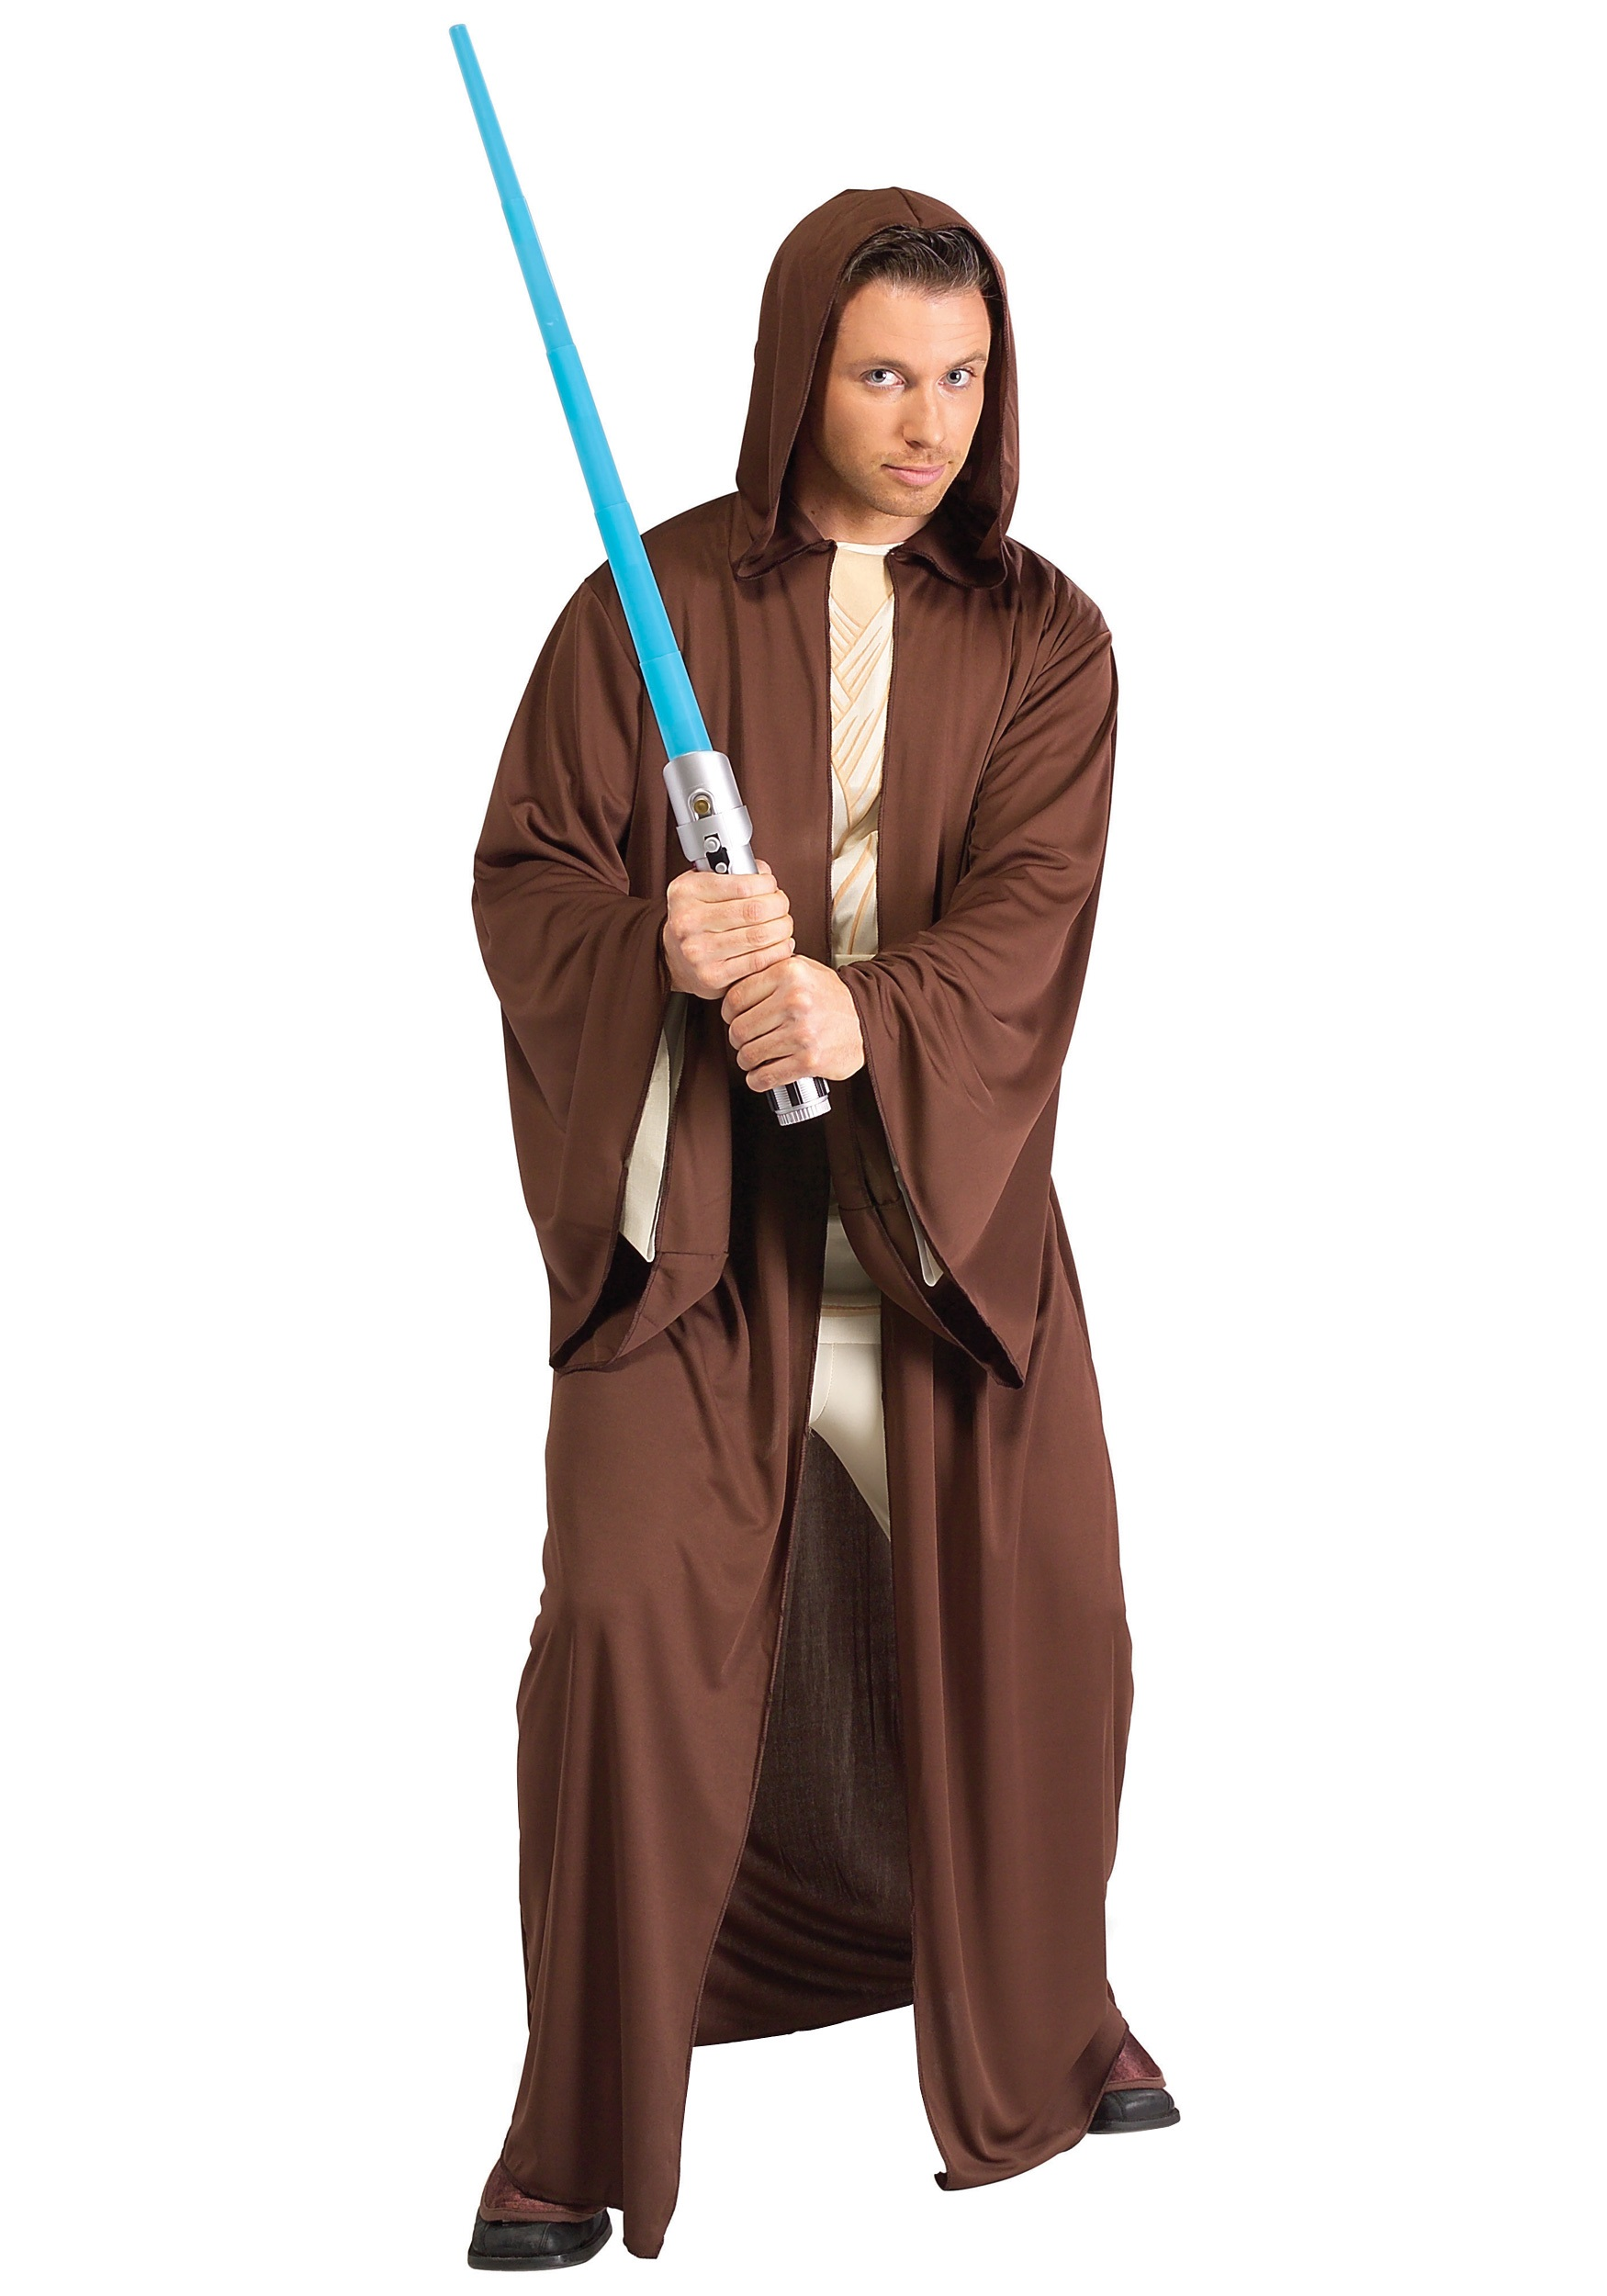 Star Wars Halloween Costumes.Star Wars Adult Jedi Robe Costume